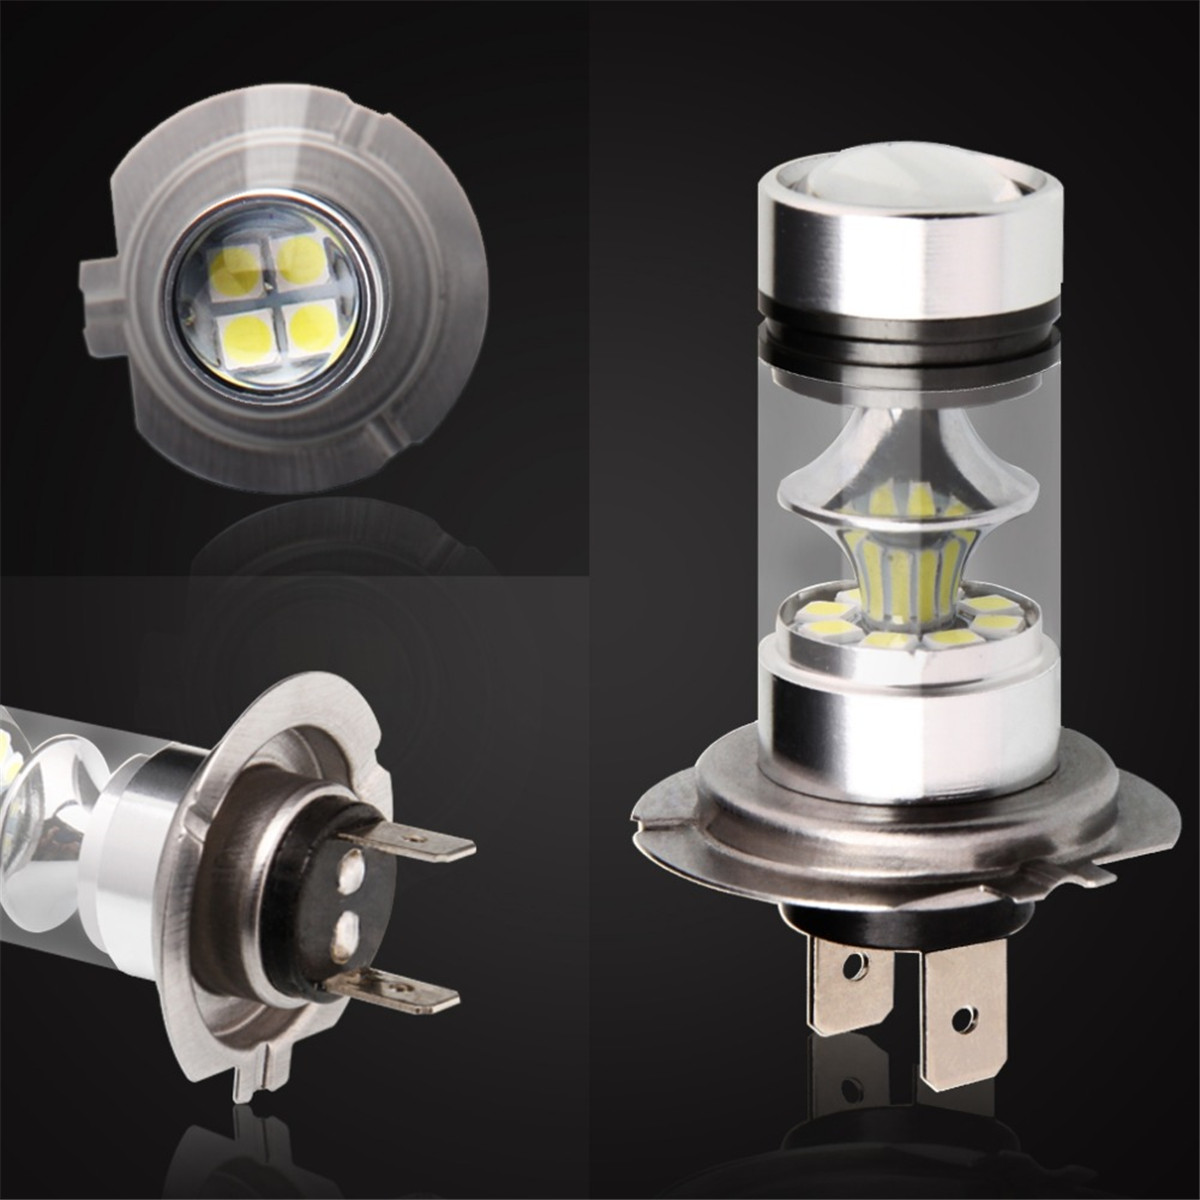 1PCS Car Led H4 H7 H8 H11 LED 9005/HB3 9006/HB4 1156 BA15S 1157 Fog Lights White 100W Bulbs 20 SMD Lamp Driving Turning Ampoule